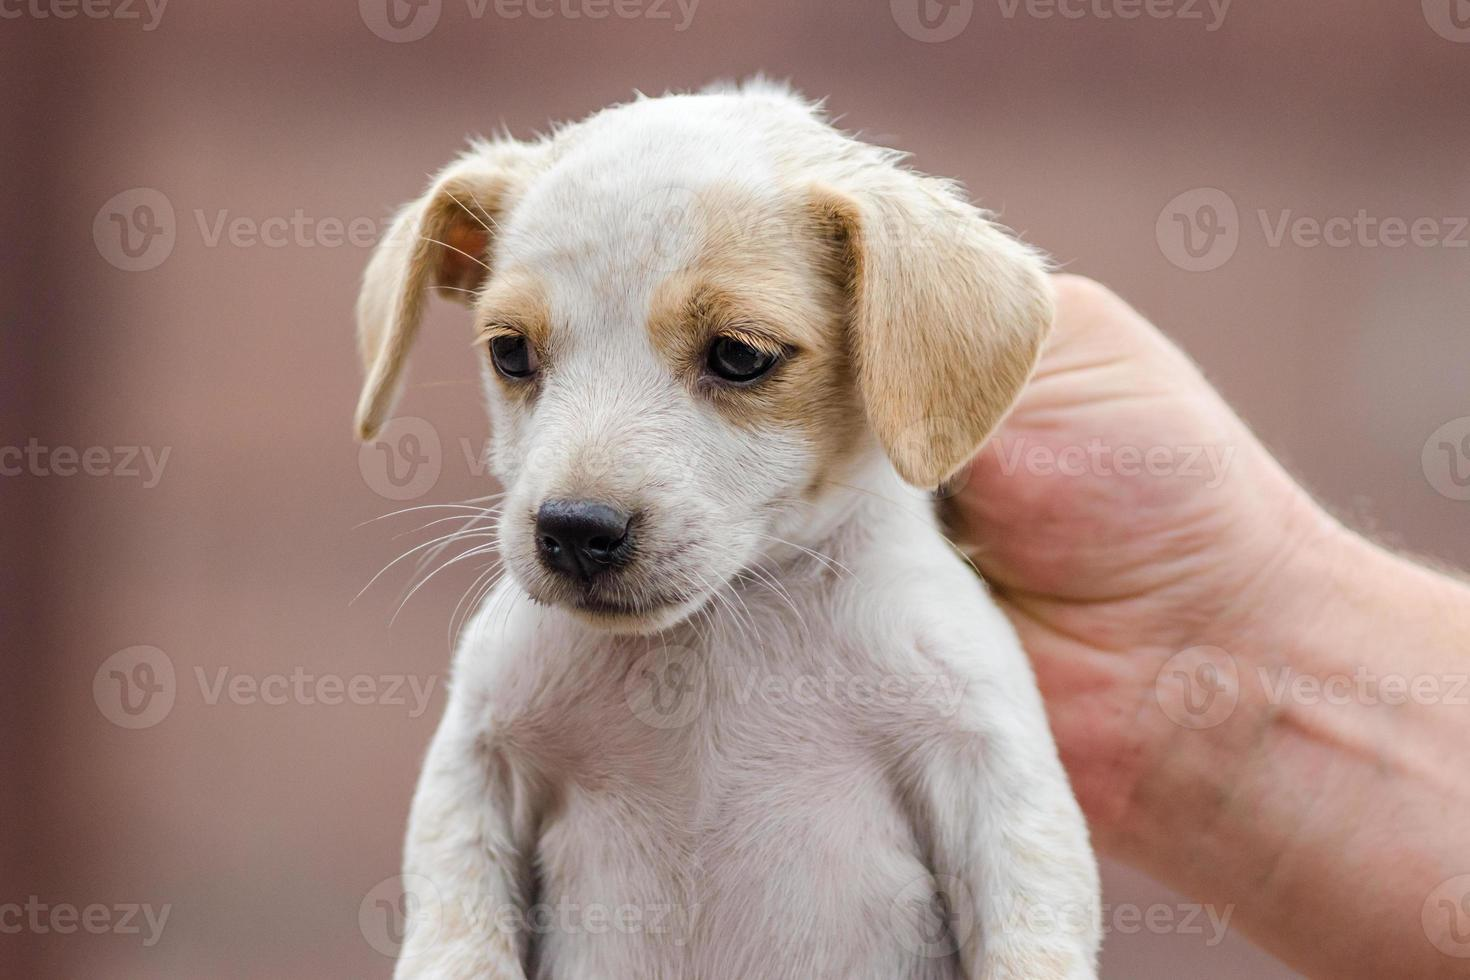 Person holding a puppy photo